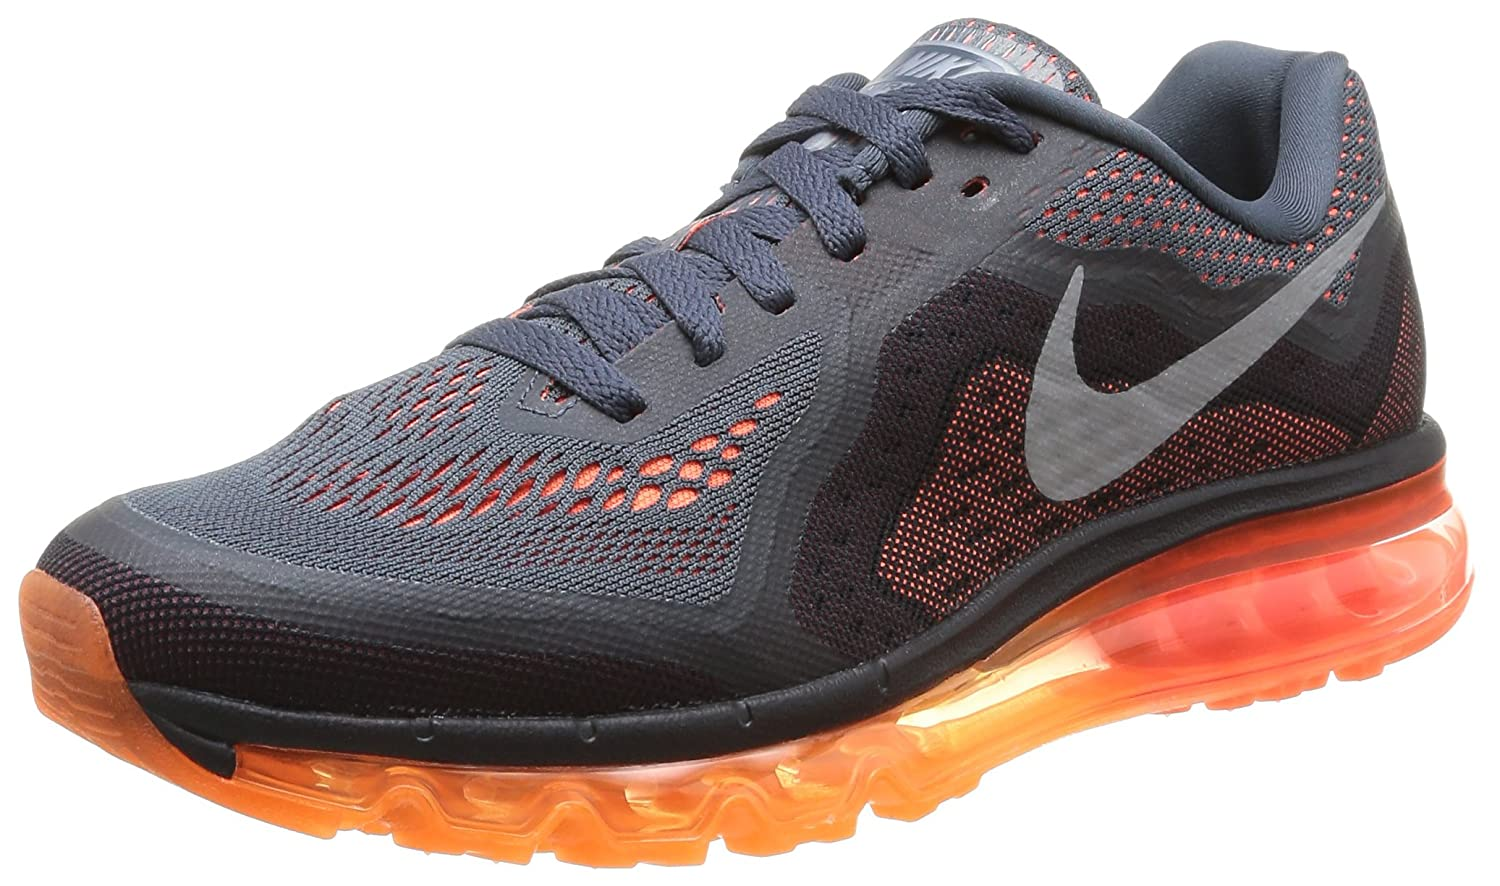 outlet store 4a9e3 efbea Amazon.com  Nike Air Max 2014 Mens Running Shoes  Road Runni